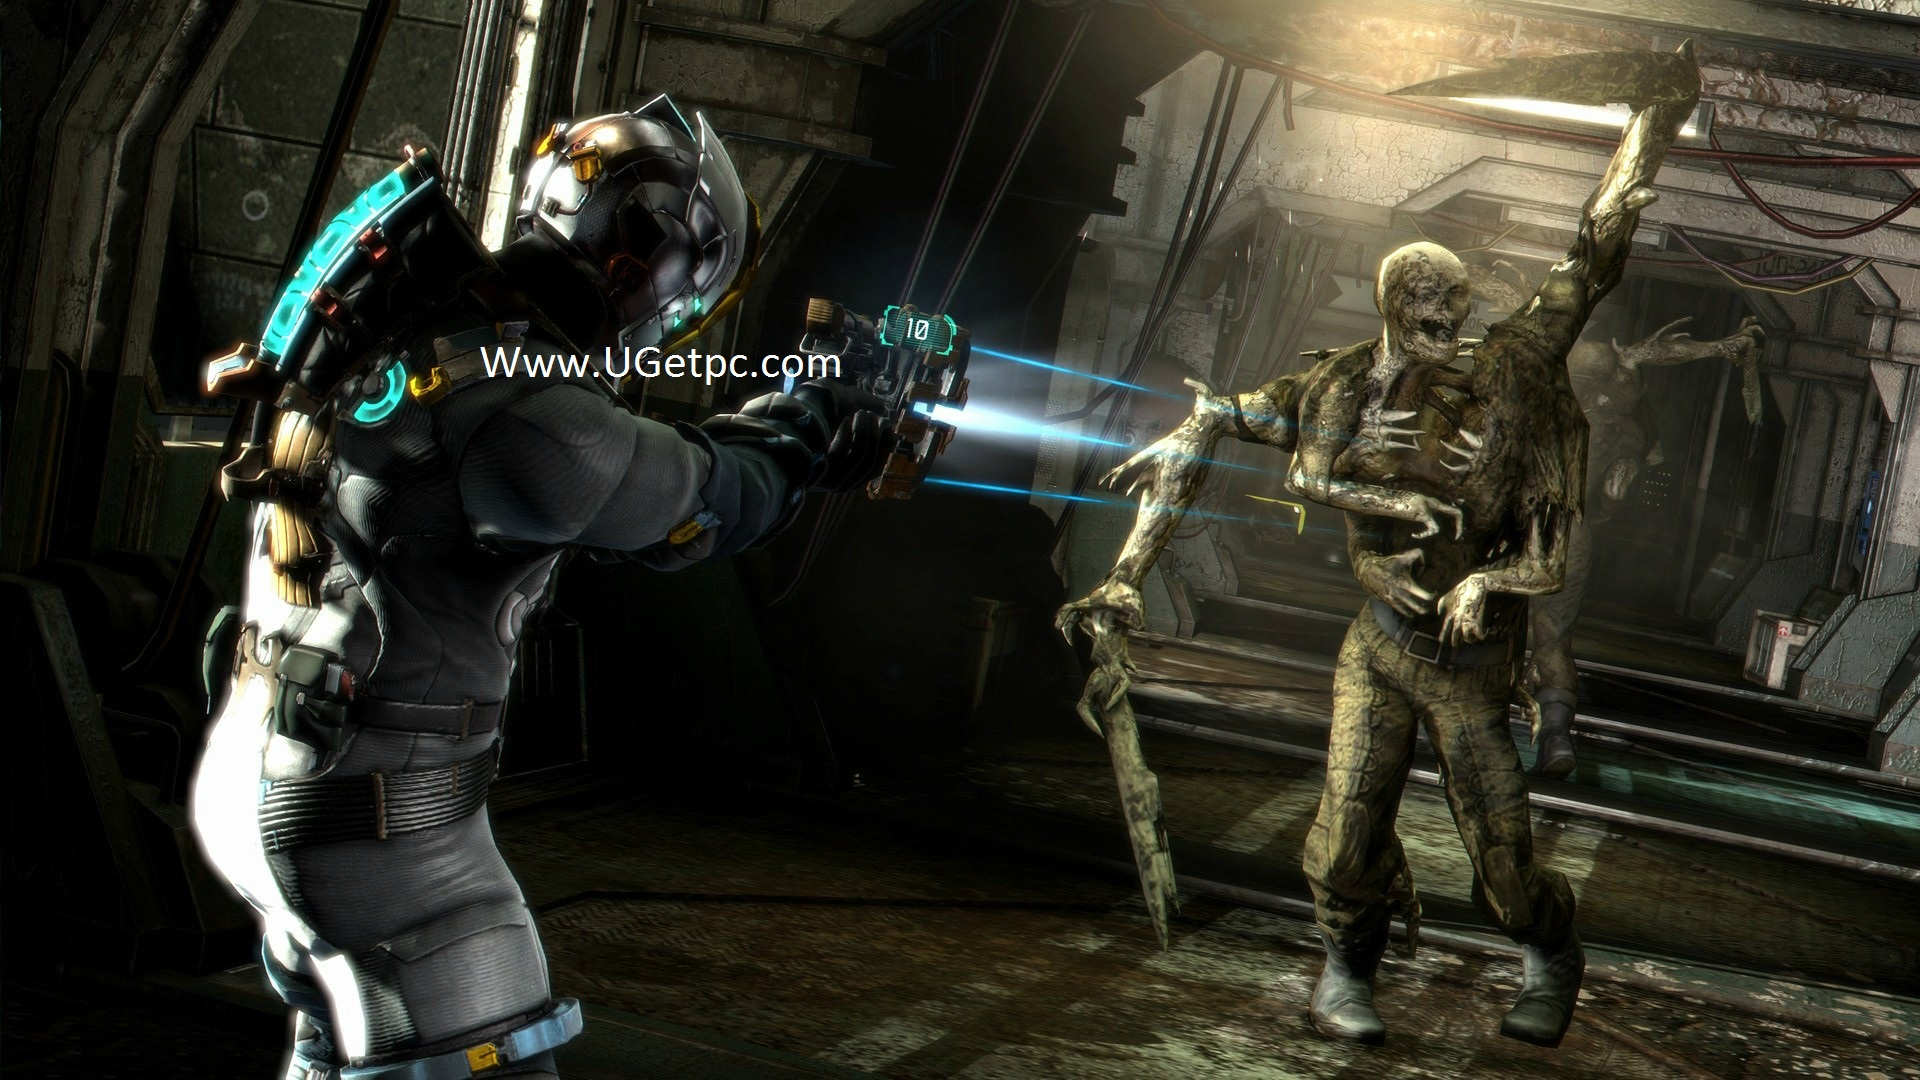 DEAD-SPACE-3-pc-UGetpc